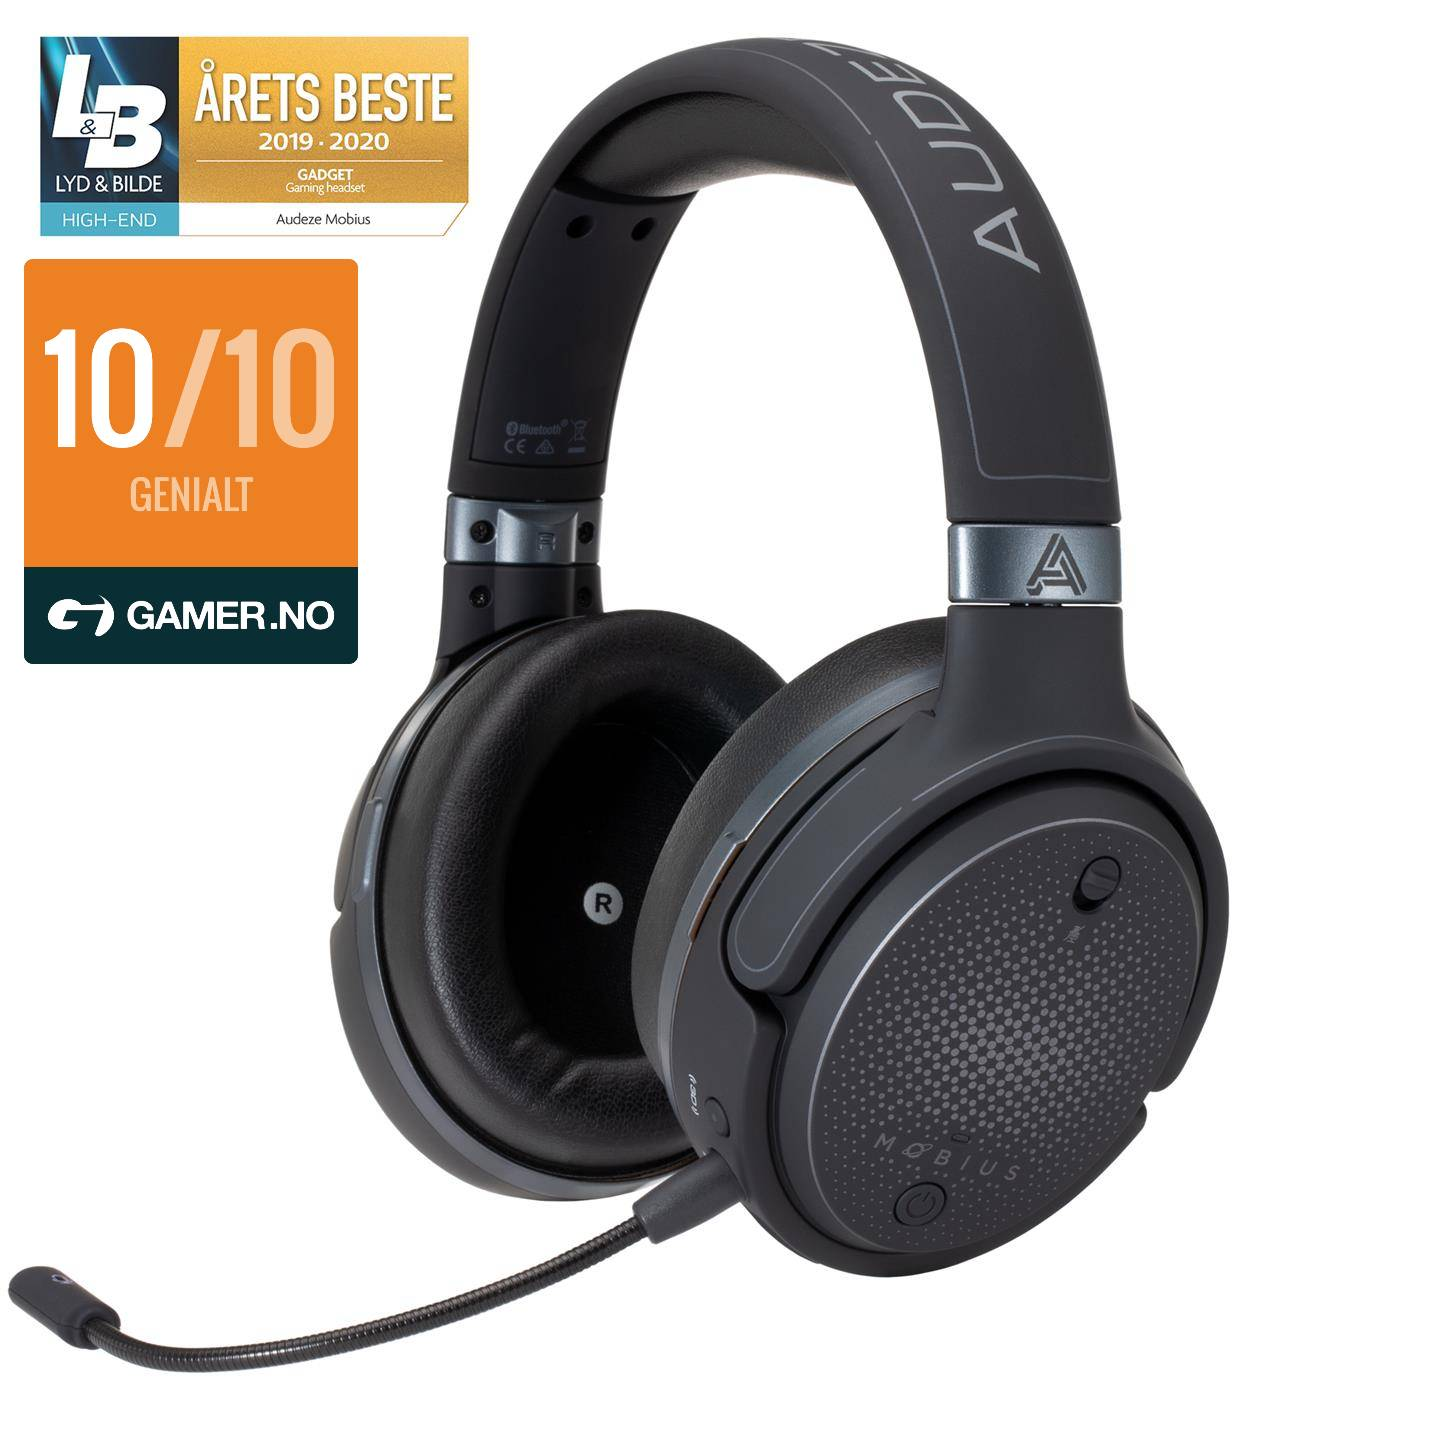 Rio Audeze Mobius Carbon - High End Gaming Headset